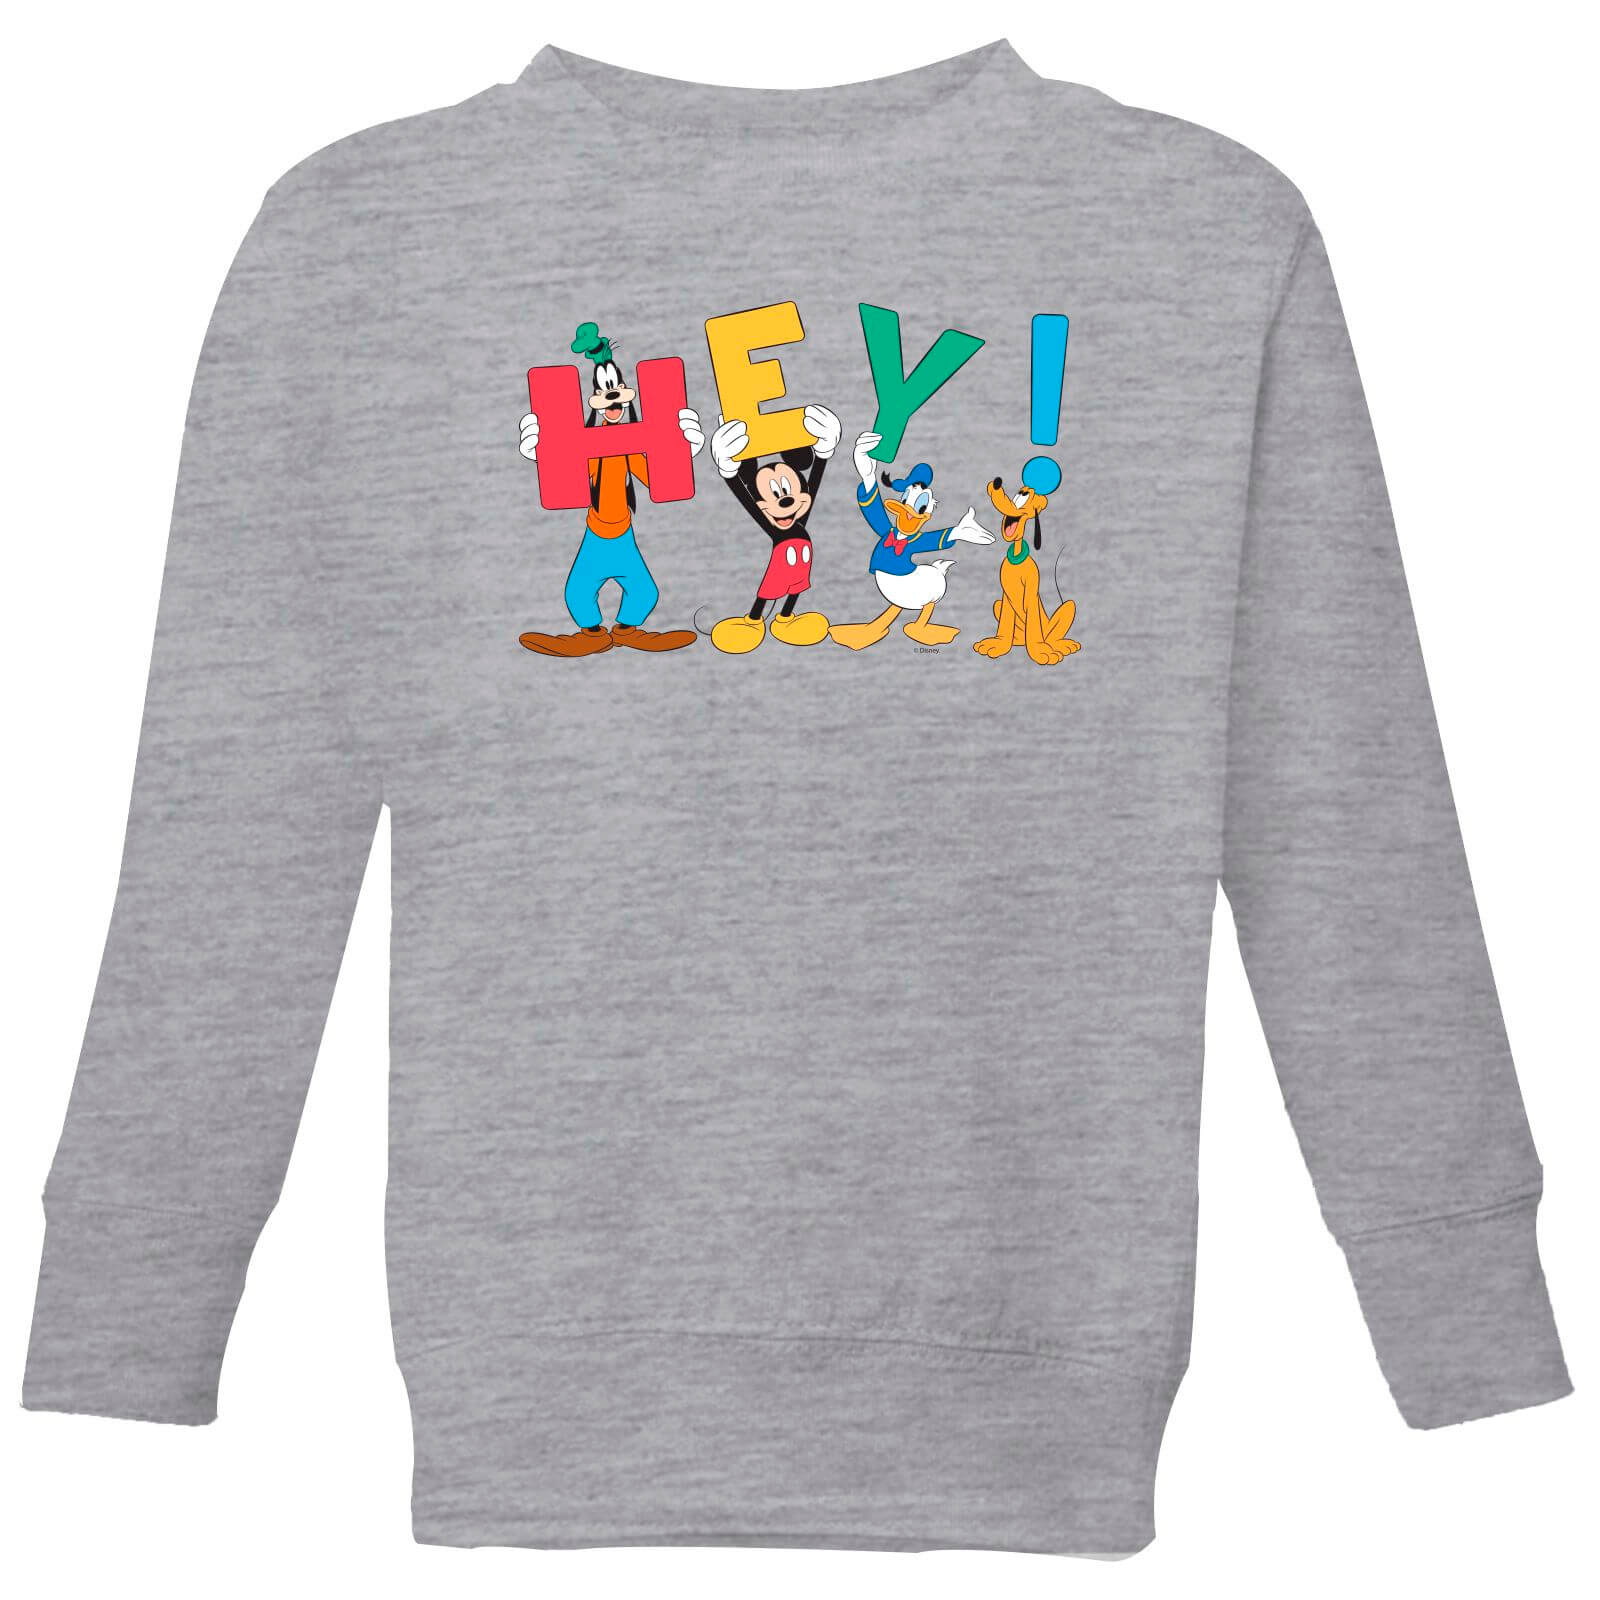 Disney Mickey Mouse Hey! Kinder Sweatshirt Grau